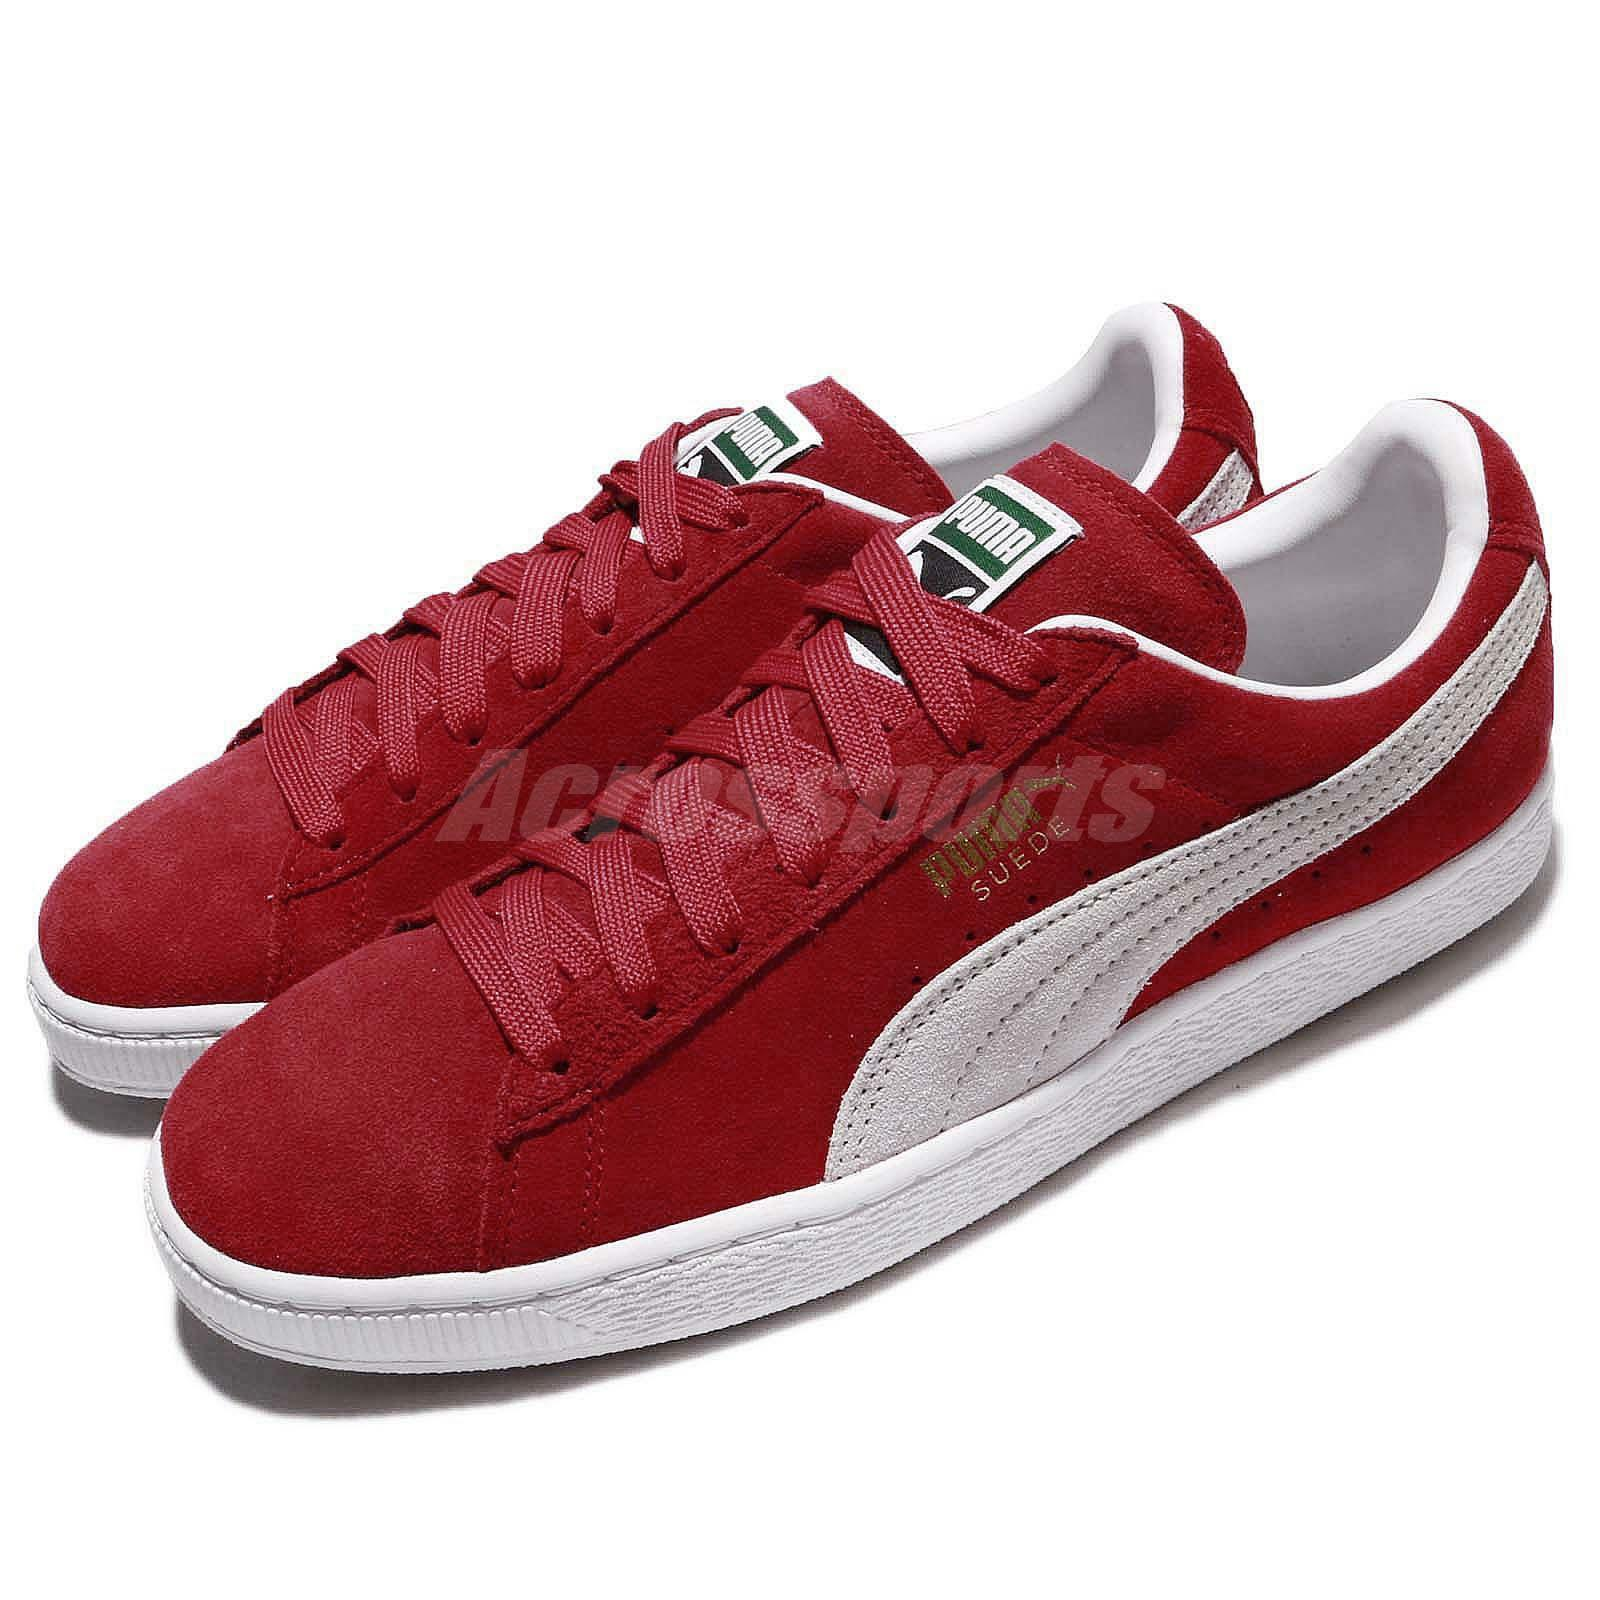 Puma Suede Classic Low Red White Men Women shoes Sneakers 352634-65